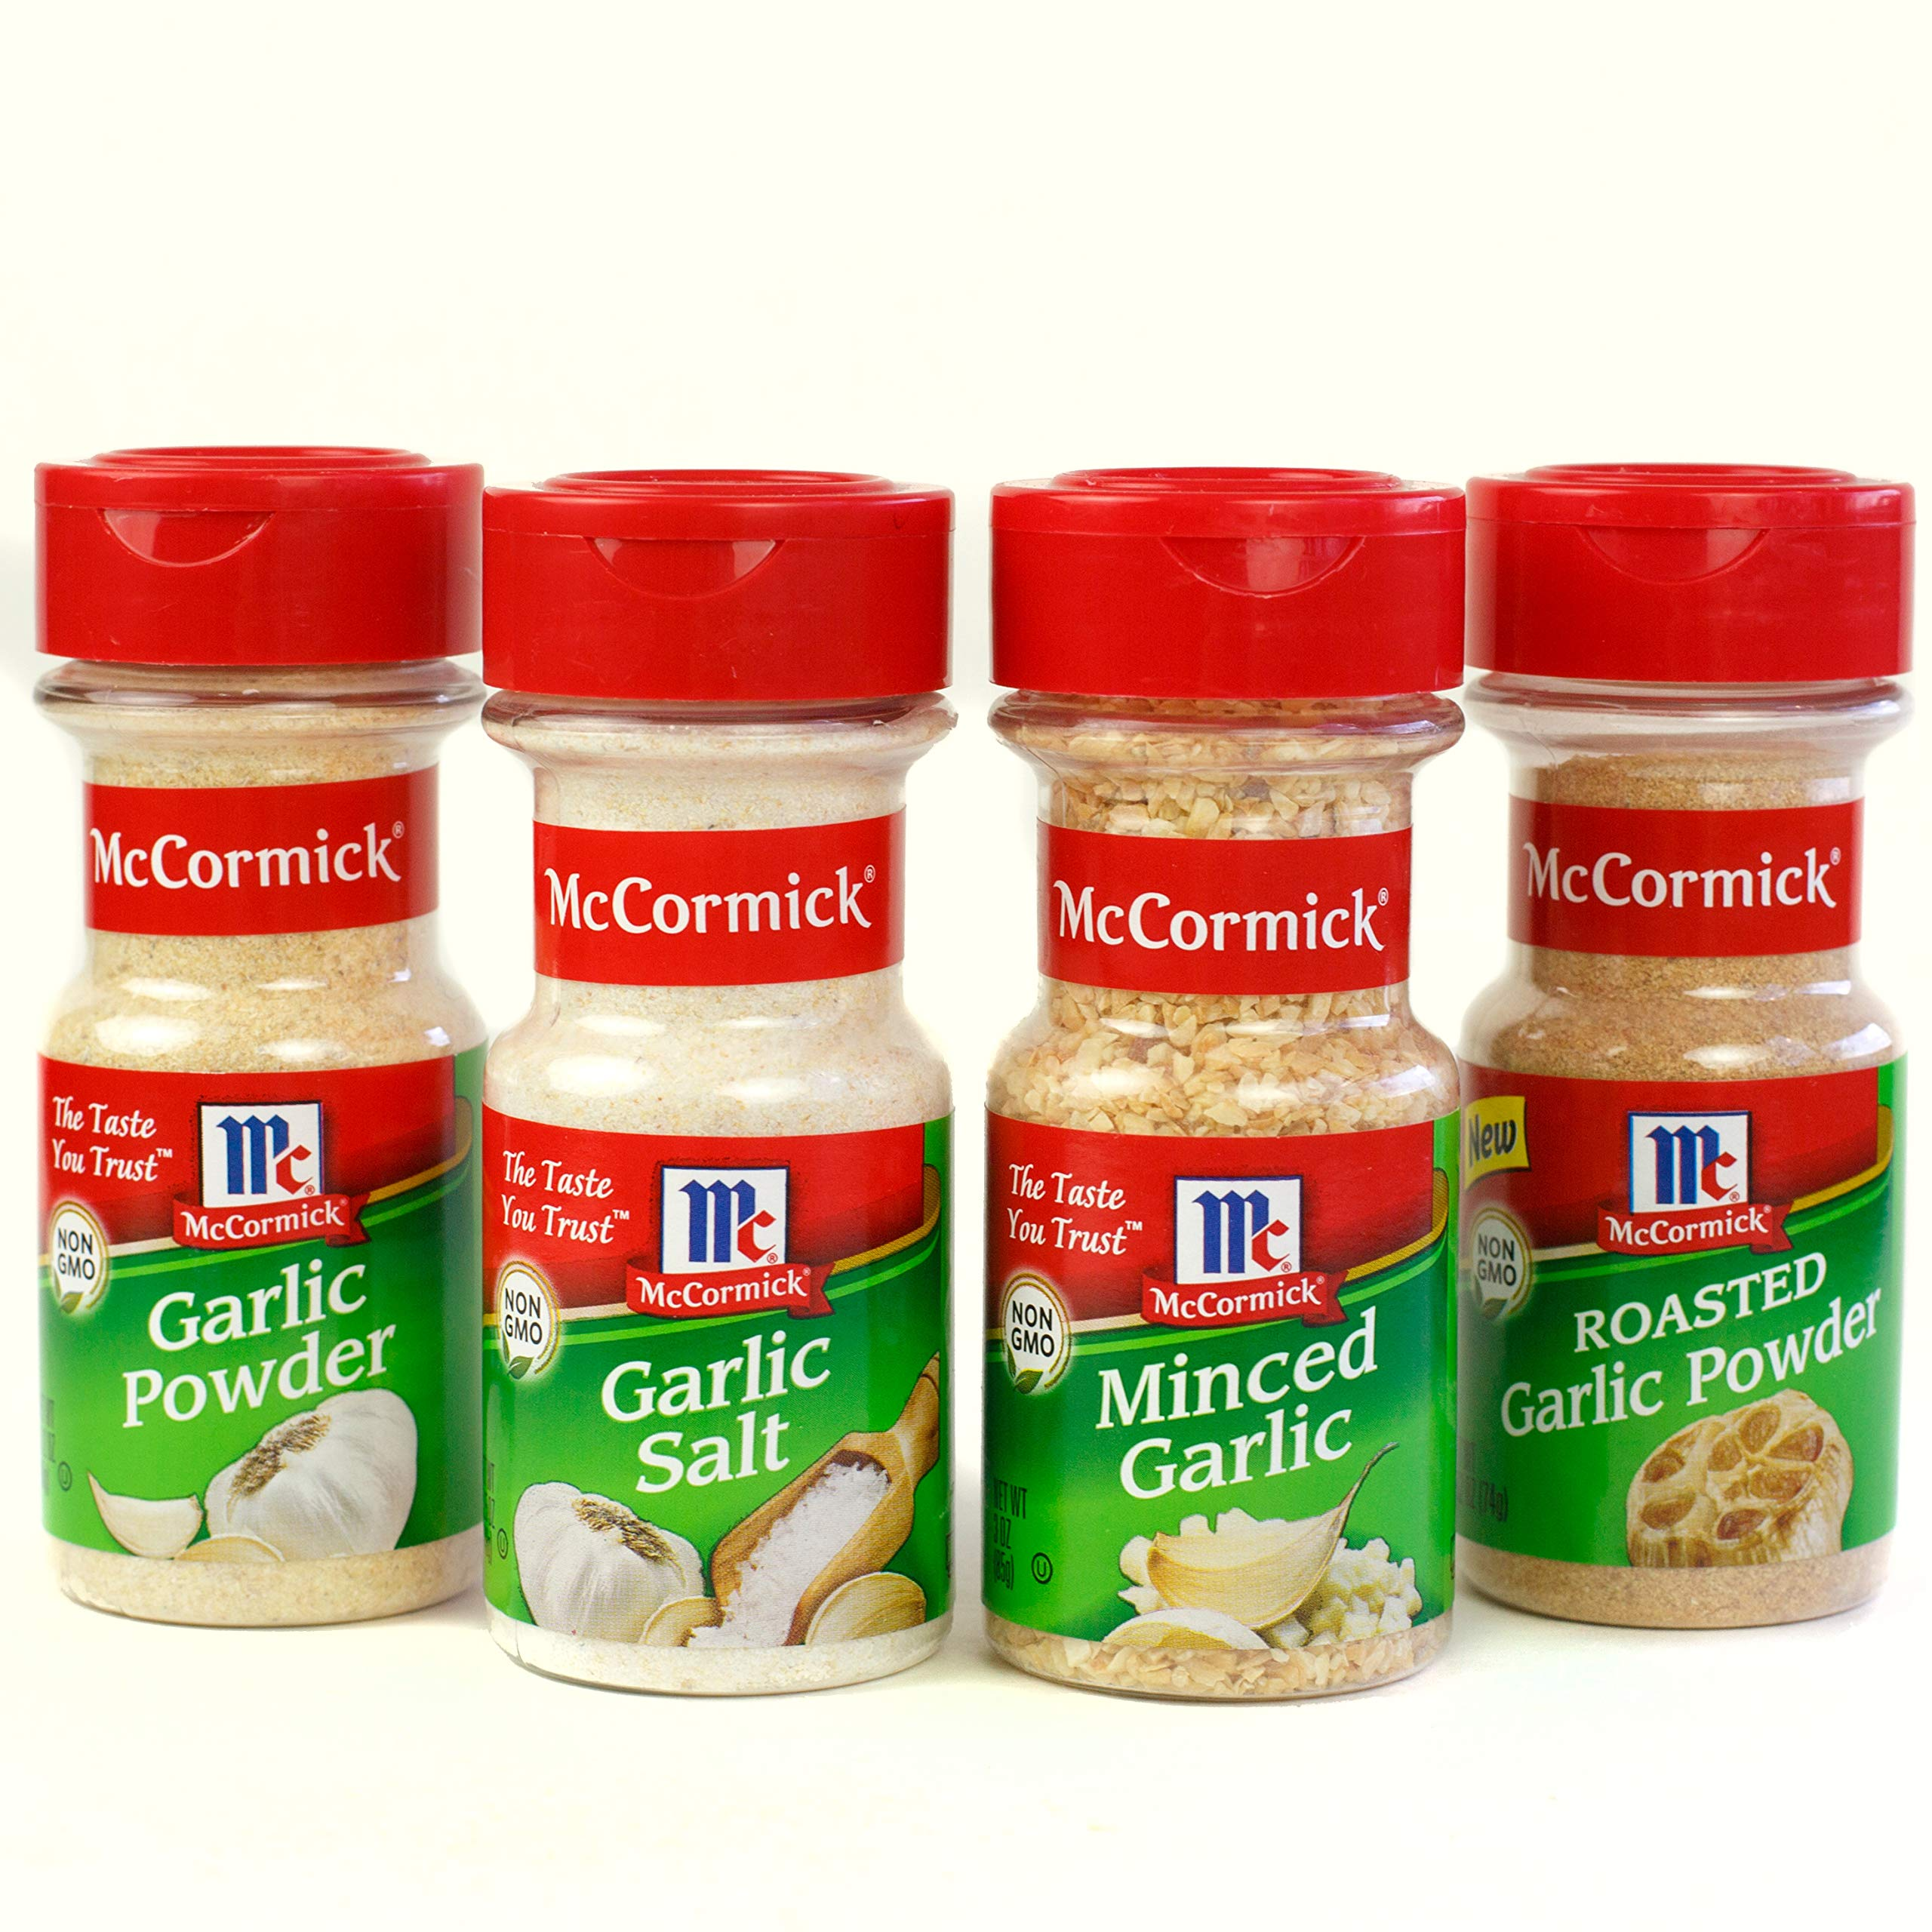 McCormick Garlic Spice Variety Pack (Garlic Powder, Minced Garlic, Roasted Garlic Powder, Garlic Salt), 4 Count